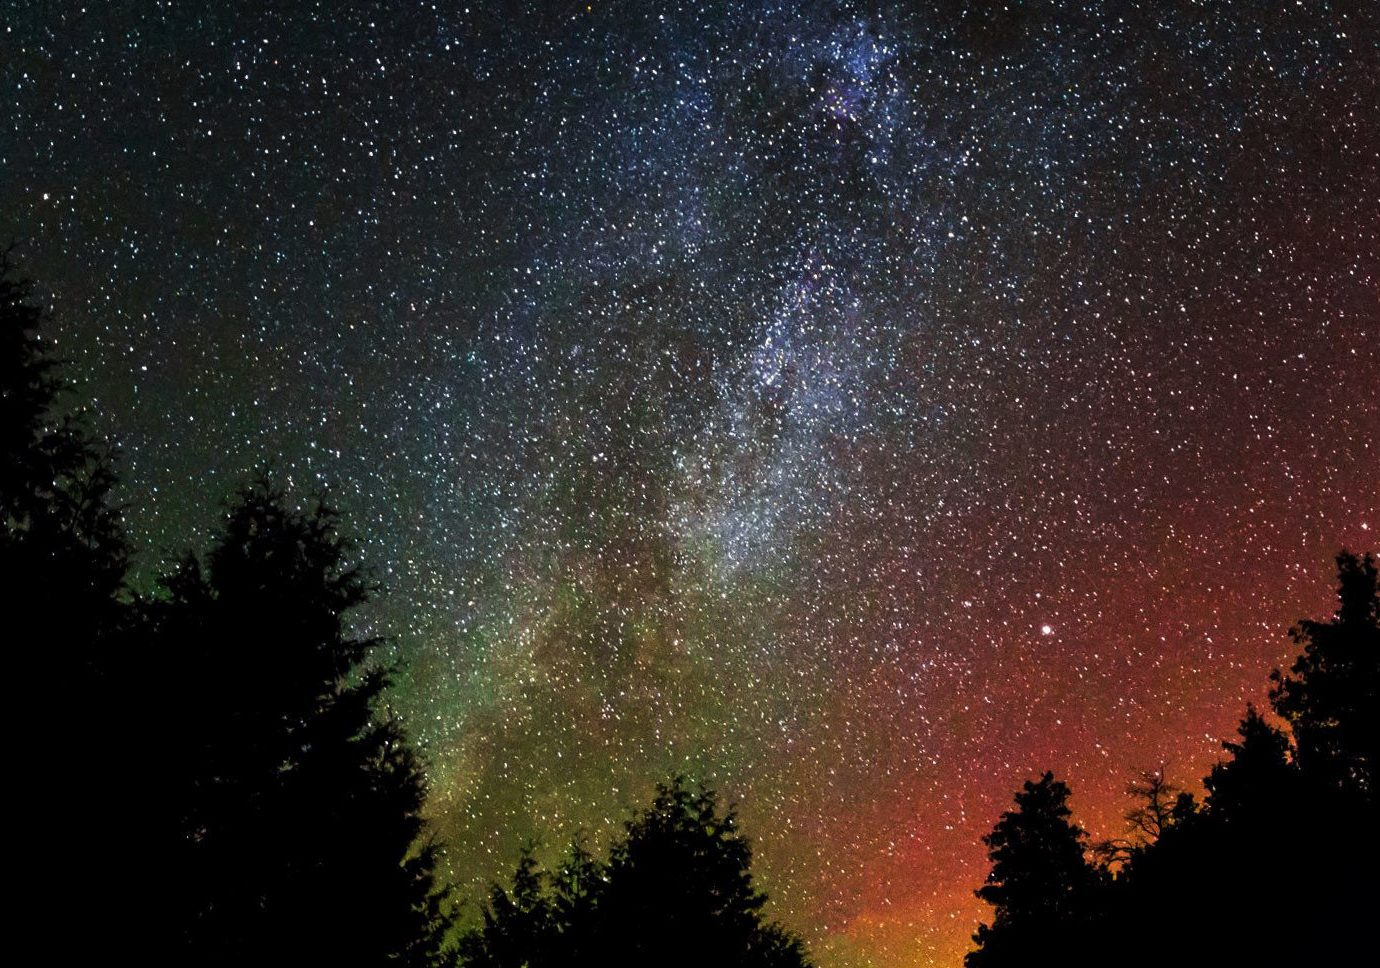 calm colorful isolation majestic Night Sky northern lights remote Scenic views serene silhouette sky star gazing stars trees Trip Ideas tree outdoor galaxy Nature astronomical object night Sunset astronomy atmosphere star spiral galaxy Sun milky way outer space light